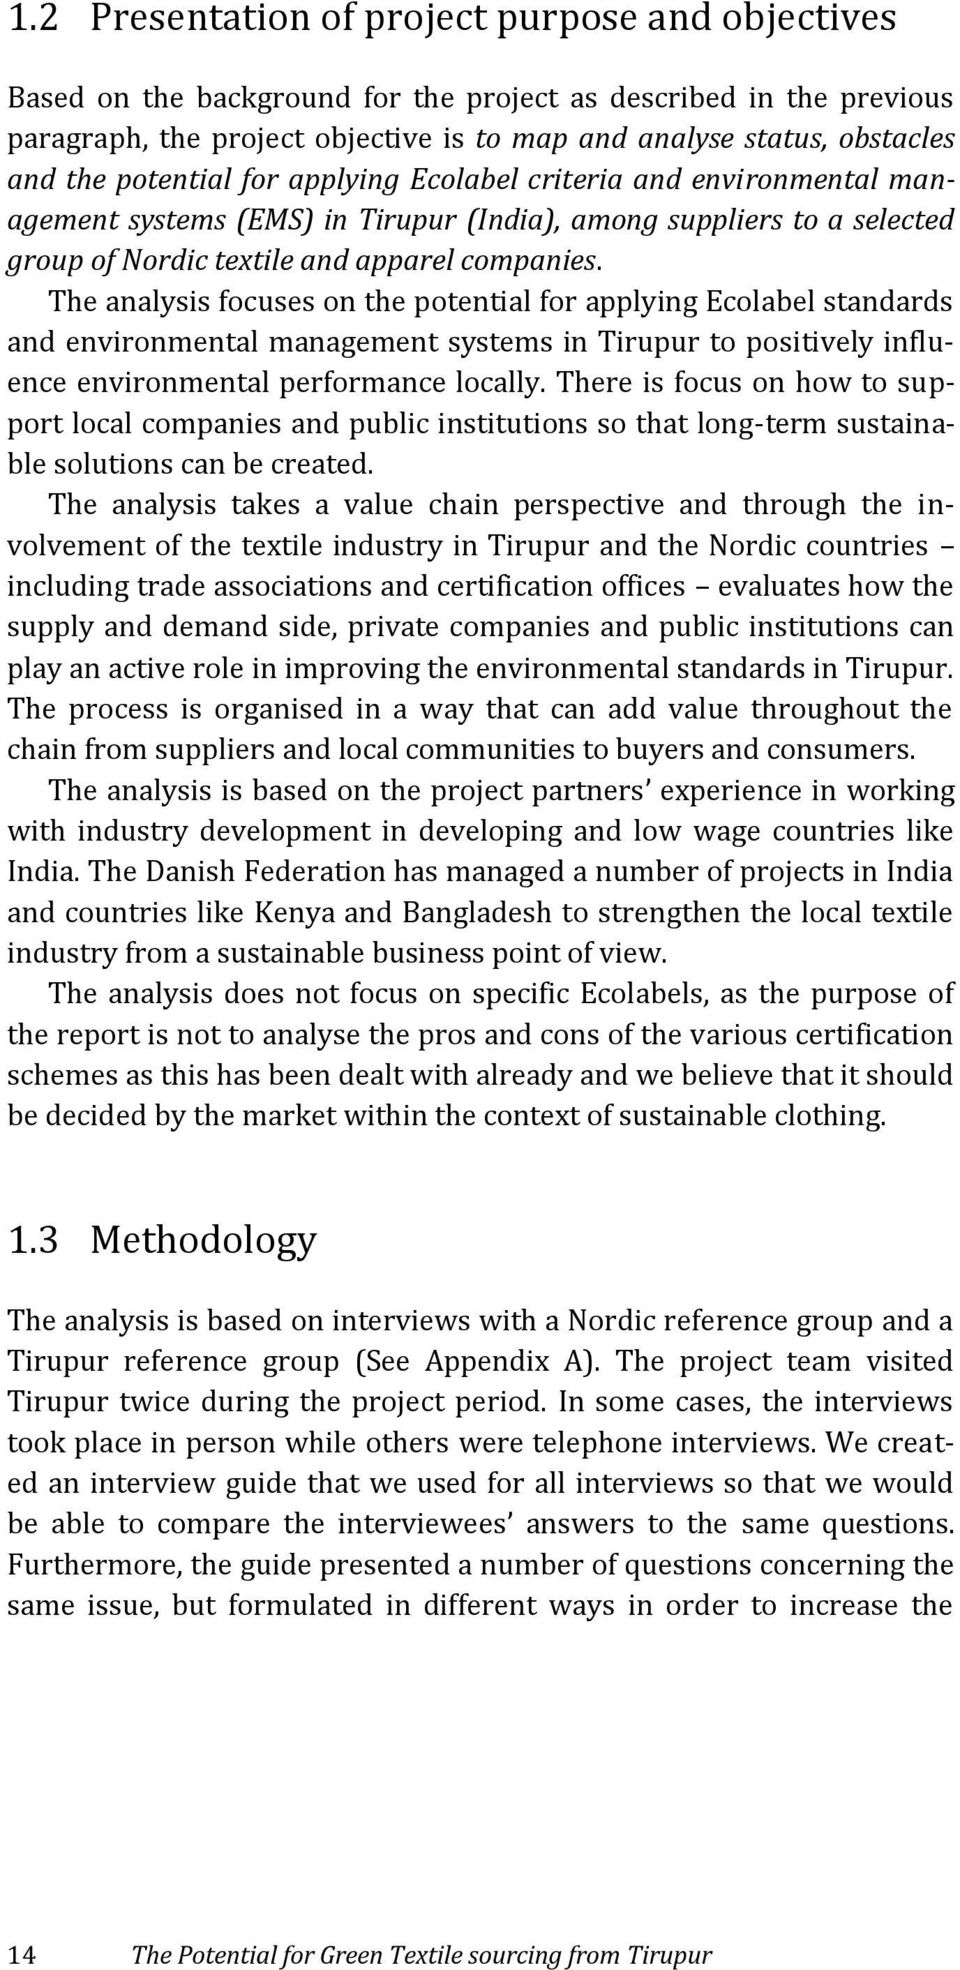 The analysis focuses on the potential for applying Ecolabel standards and environmental management systems in Tirupur to positively influence environmental performance locally.